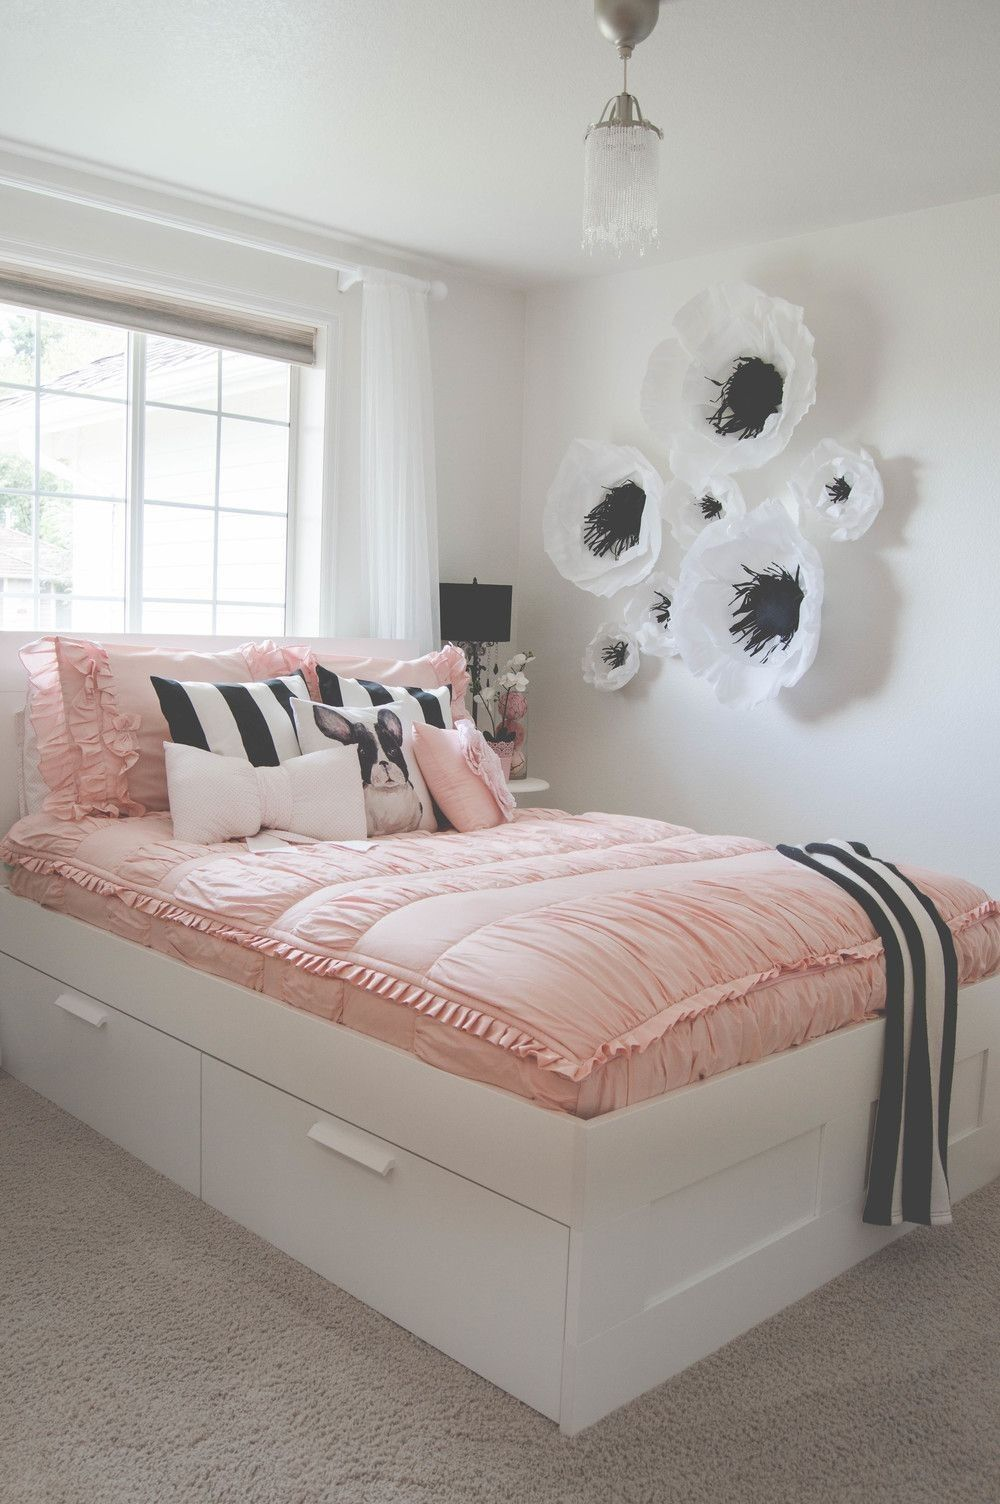 Teen Girl Room Design: Pin By Chelsi Cremer On House